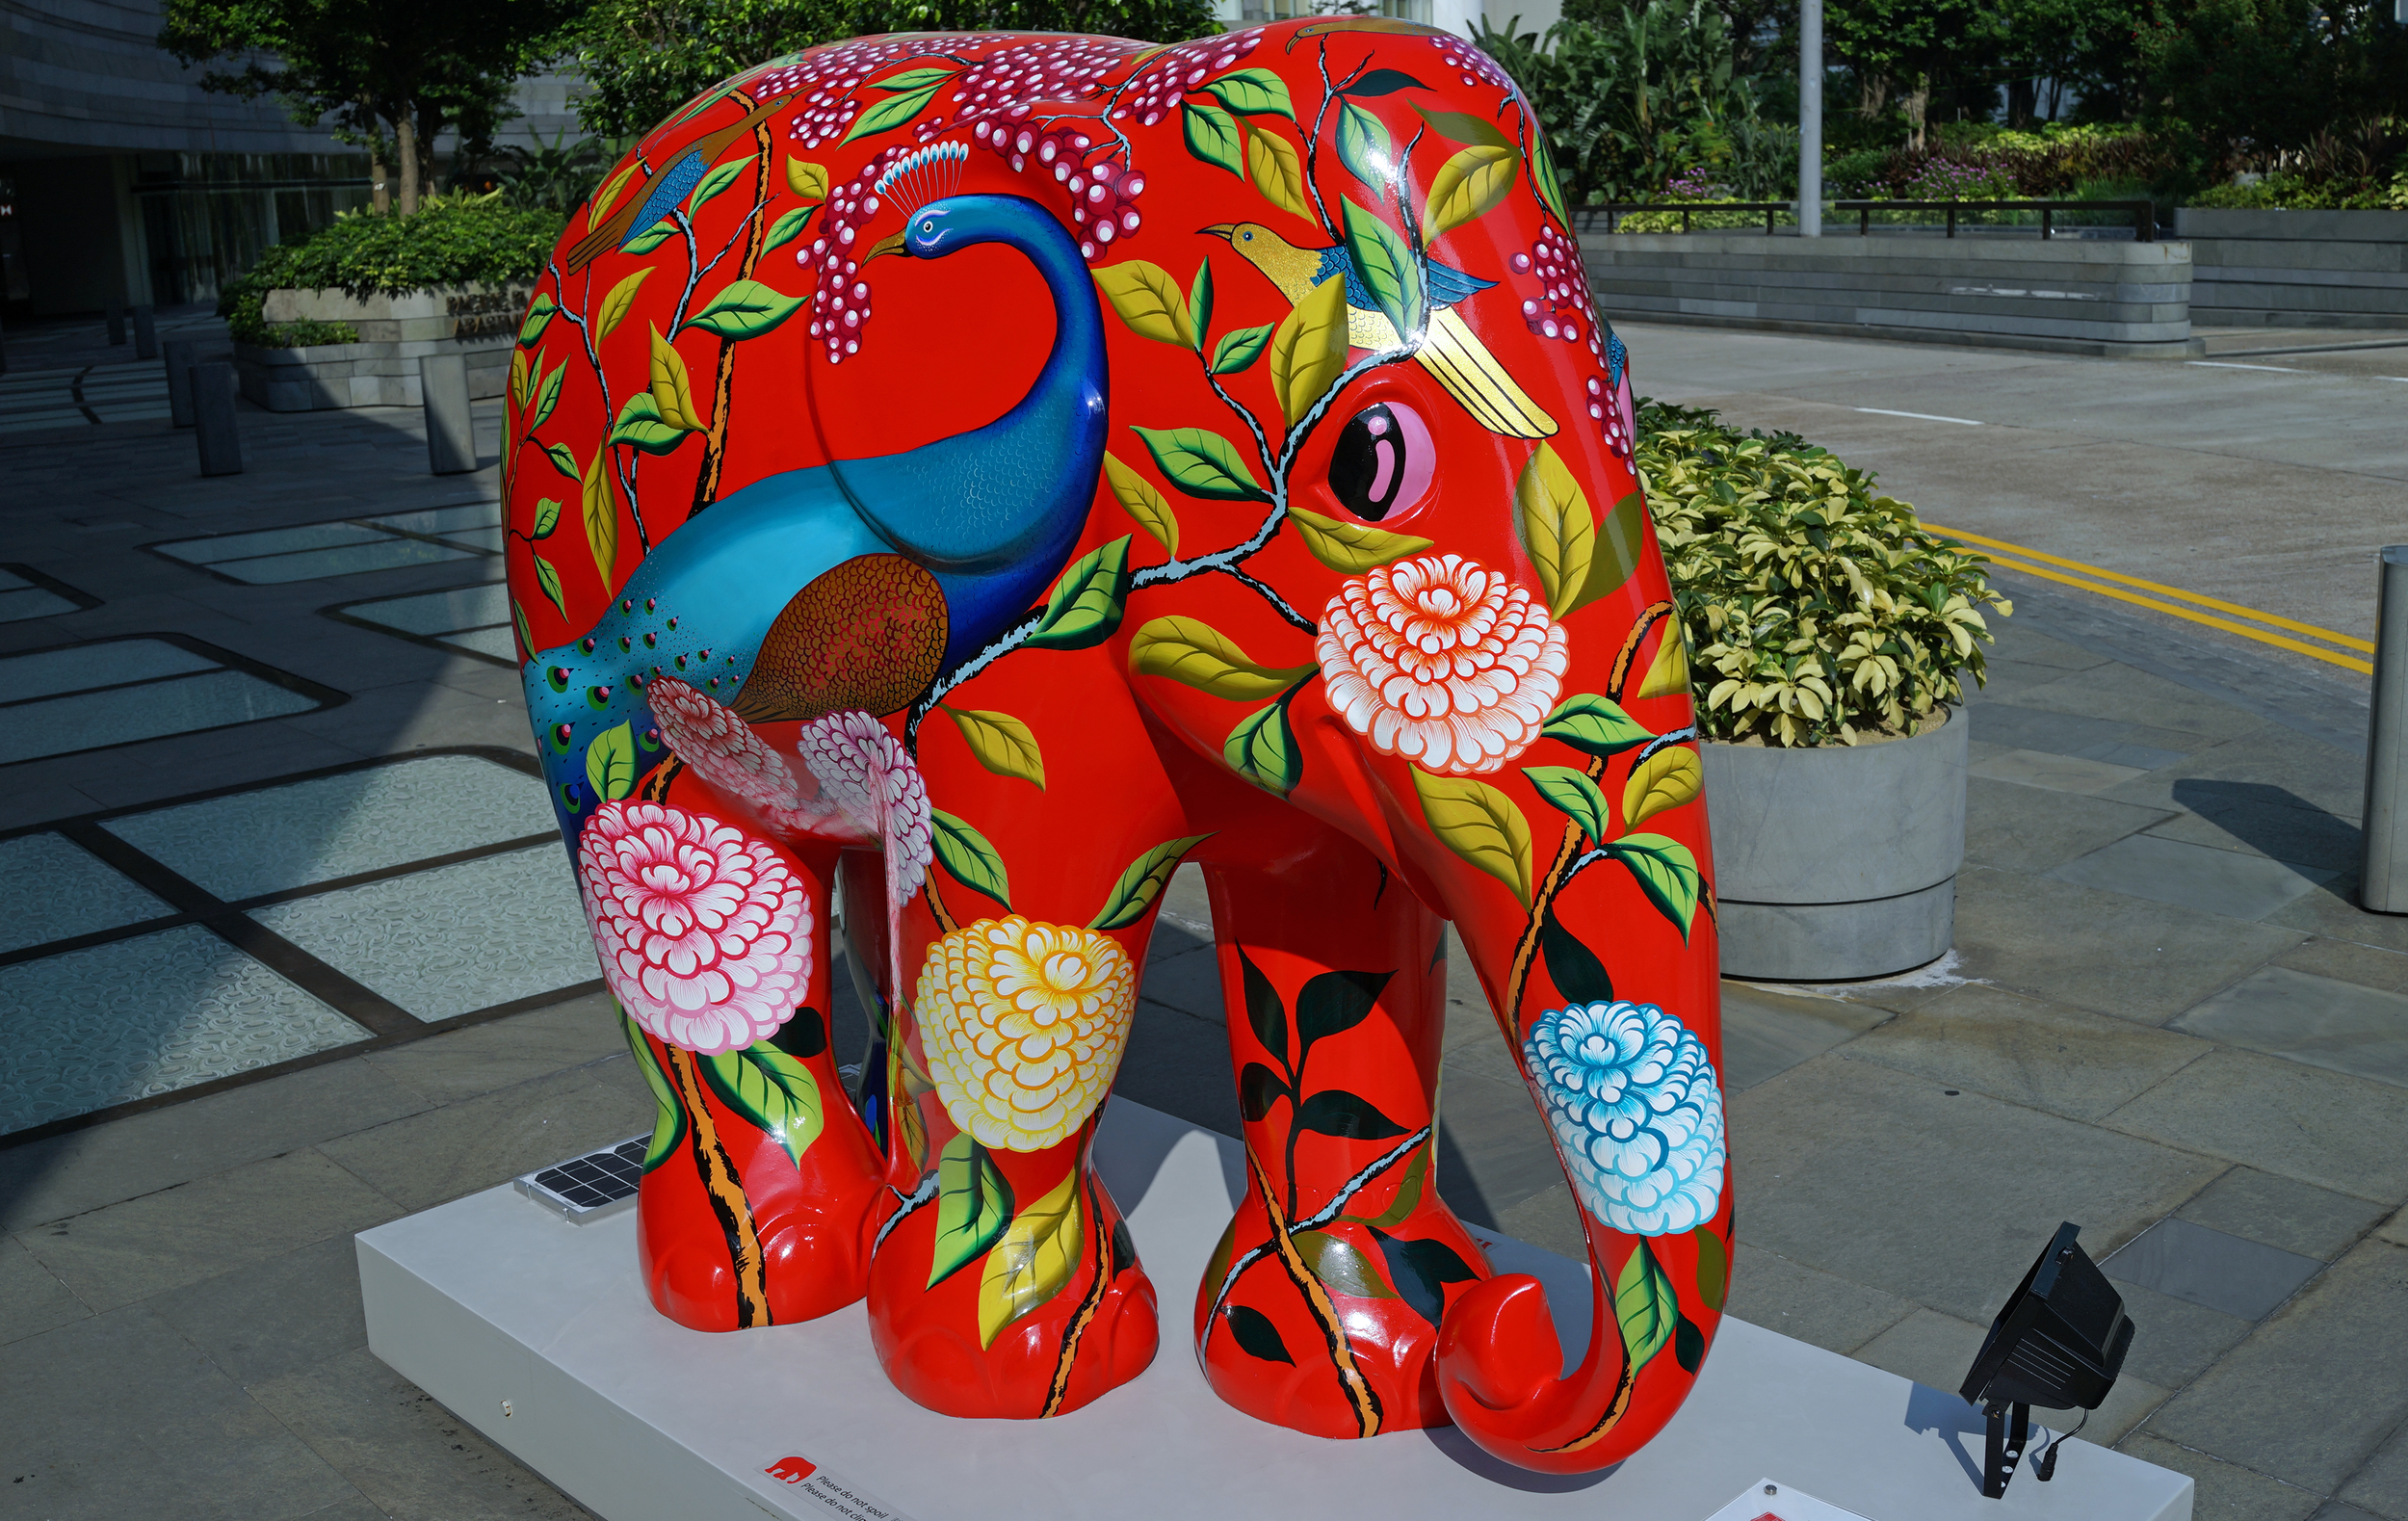 A few months ago colourful elephants were all the rage... now they are not.